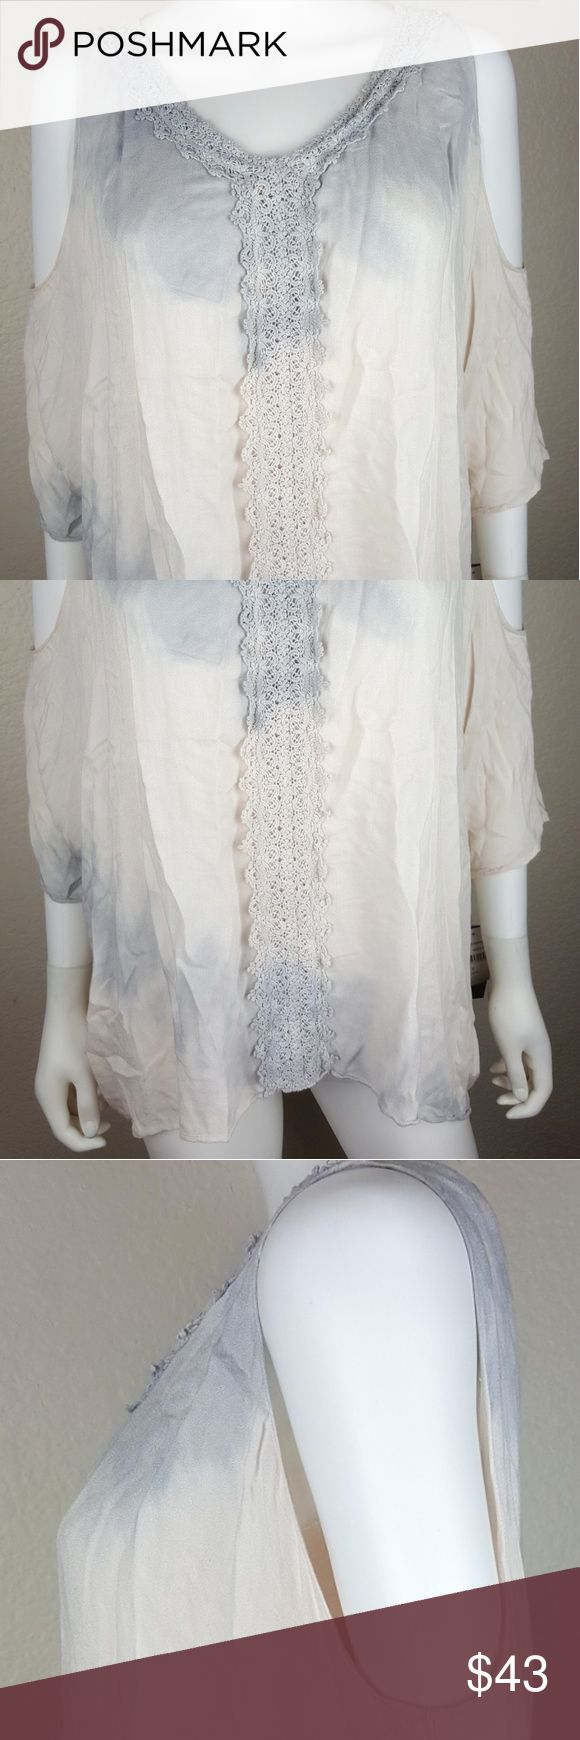 Wit & Wisdom Women's Blouse Size Small NWT Neutral Wit & Wisdom women's multi colored neutral blouse.  Size Small.  Cold Shoulder.  100% Rayon  Brand new with tags $68   Armpit to armpit 31 inches  Length 25 inches Wit & Wisdom Tops Blouses